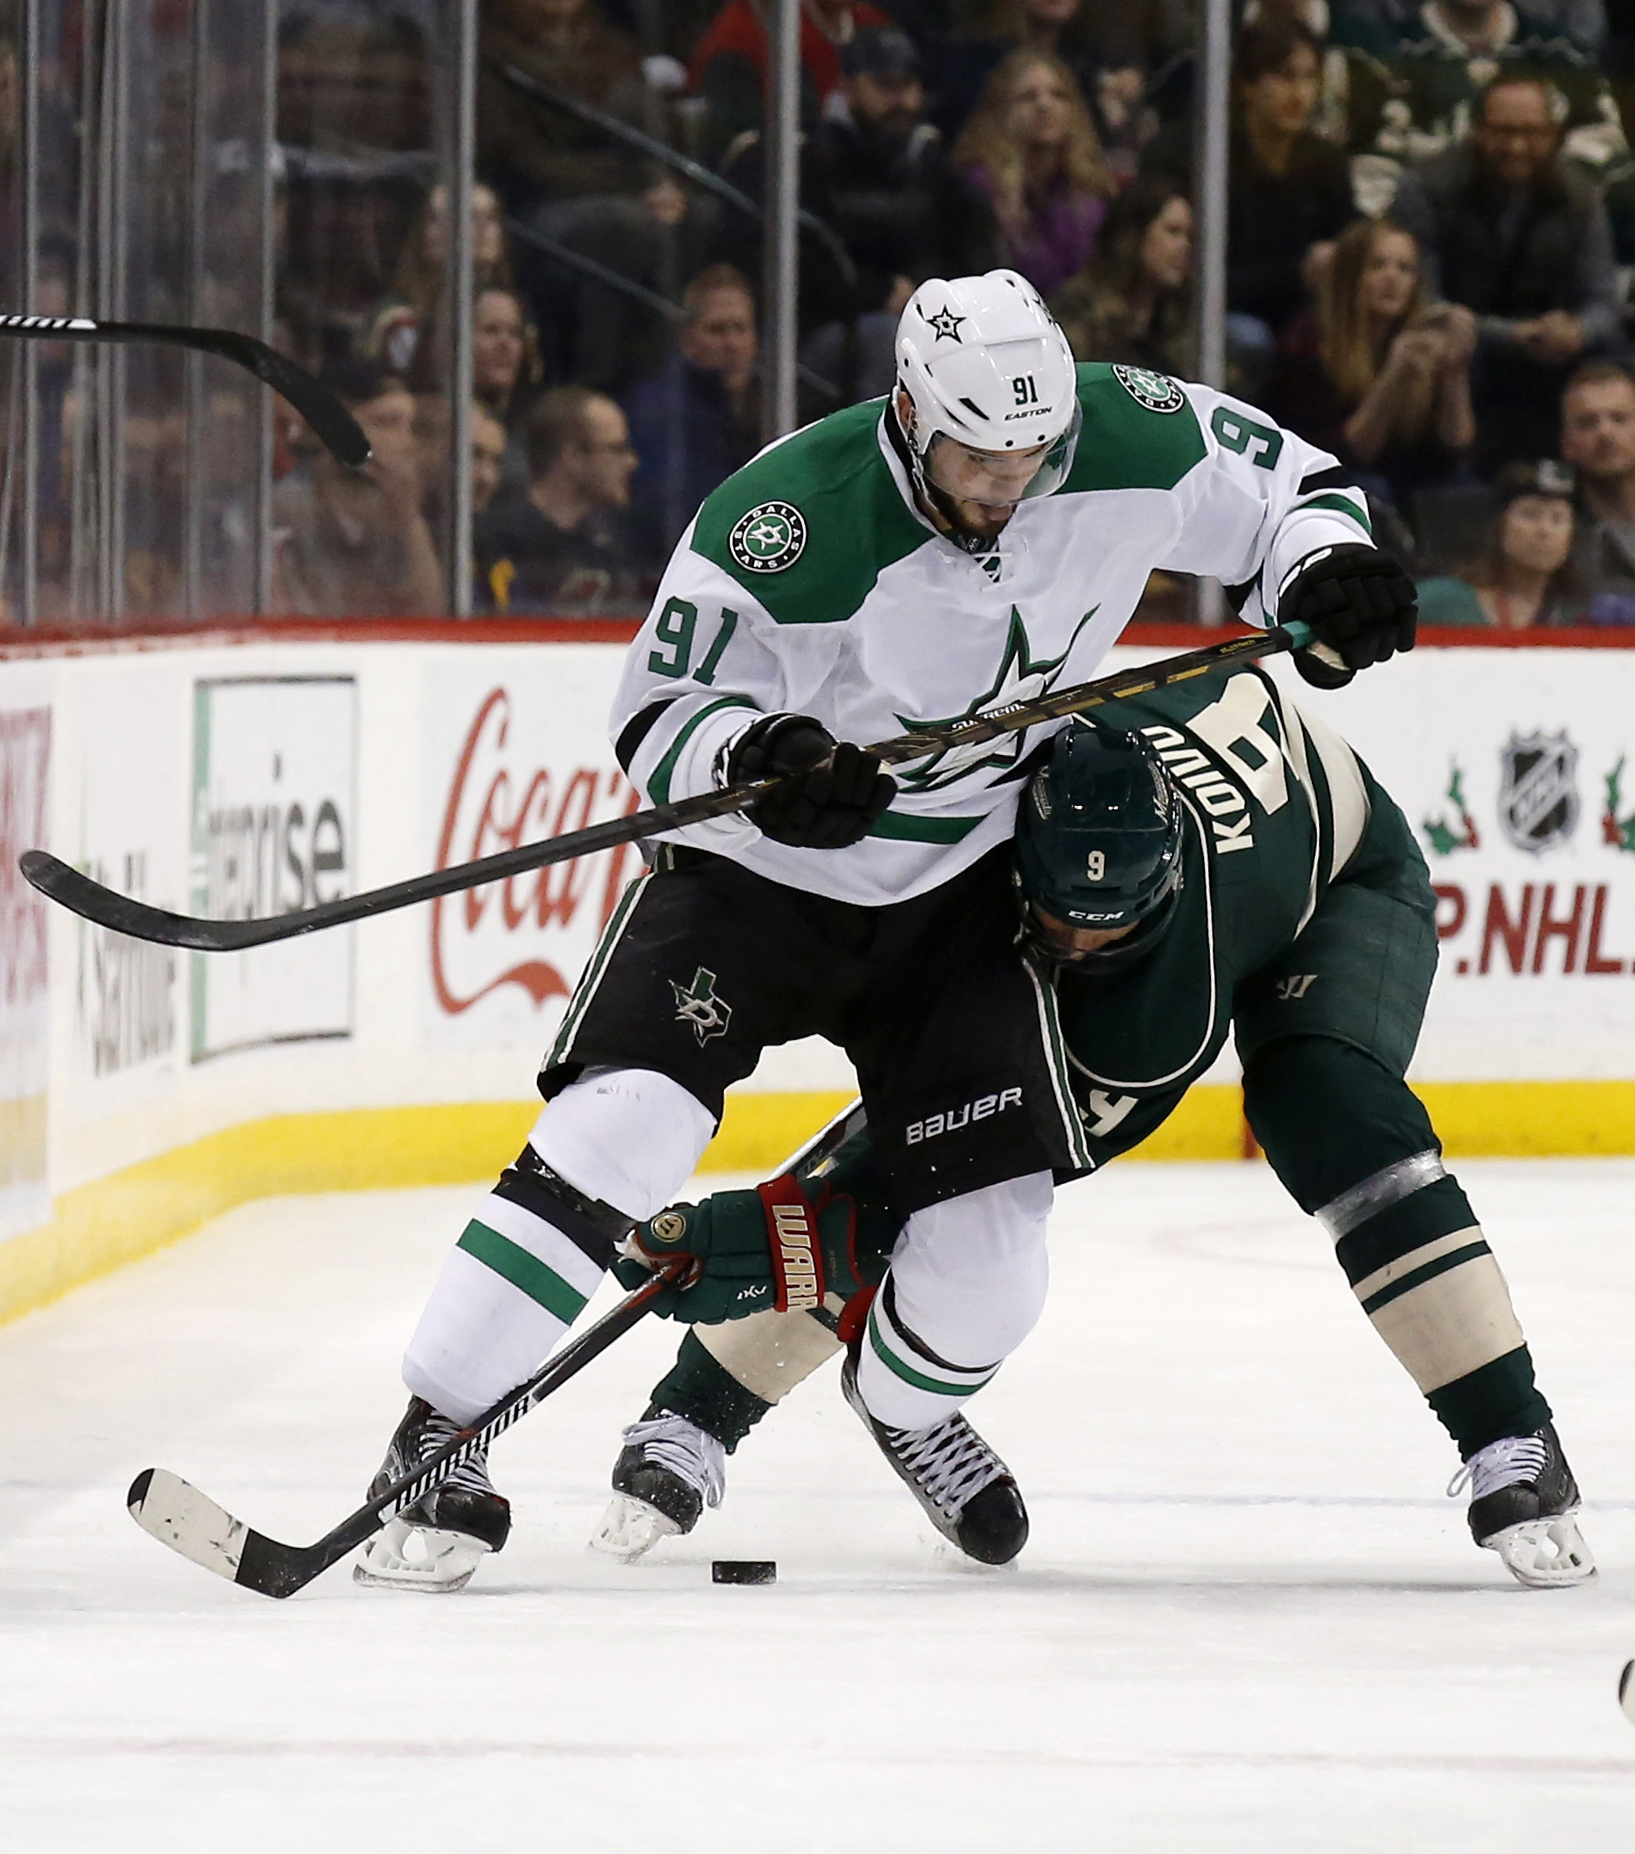 Dallas Stars center Tyler Seguin (91) and Minnesota Wild center Mikko Koivu (9), of Finland, battle for the puck during the second period of an NHL hockey game in St. Paul, Minn., Saturday, Nov. 28, 2015. (AP Photo/Ann Heisenfelt)